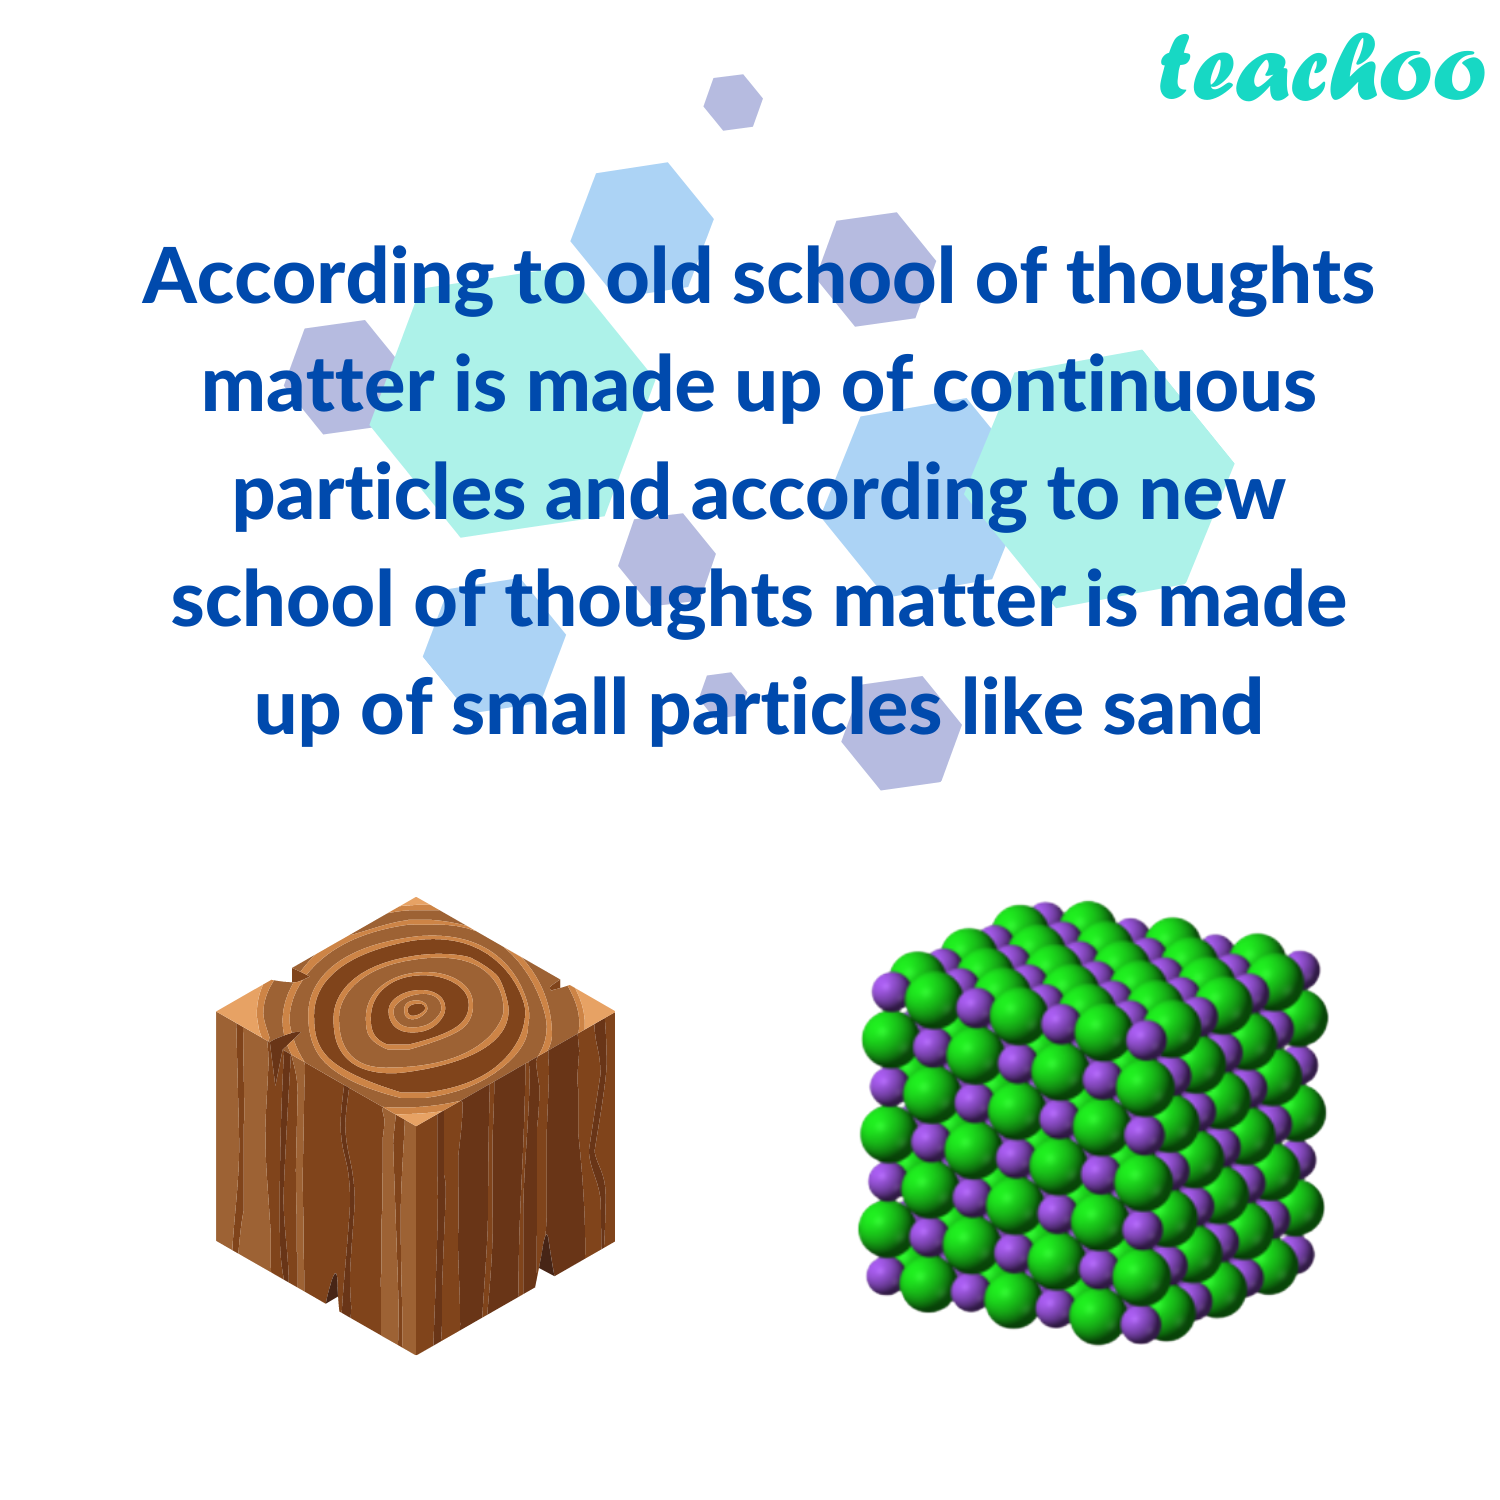 According to old school of thoughts matter is made up of continuous particles and according to new school of thoughts matter is made up of small particles like sand - Teachoo.png